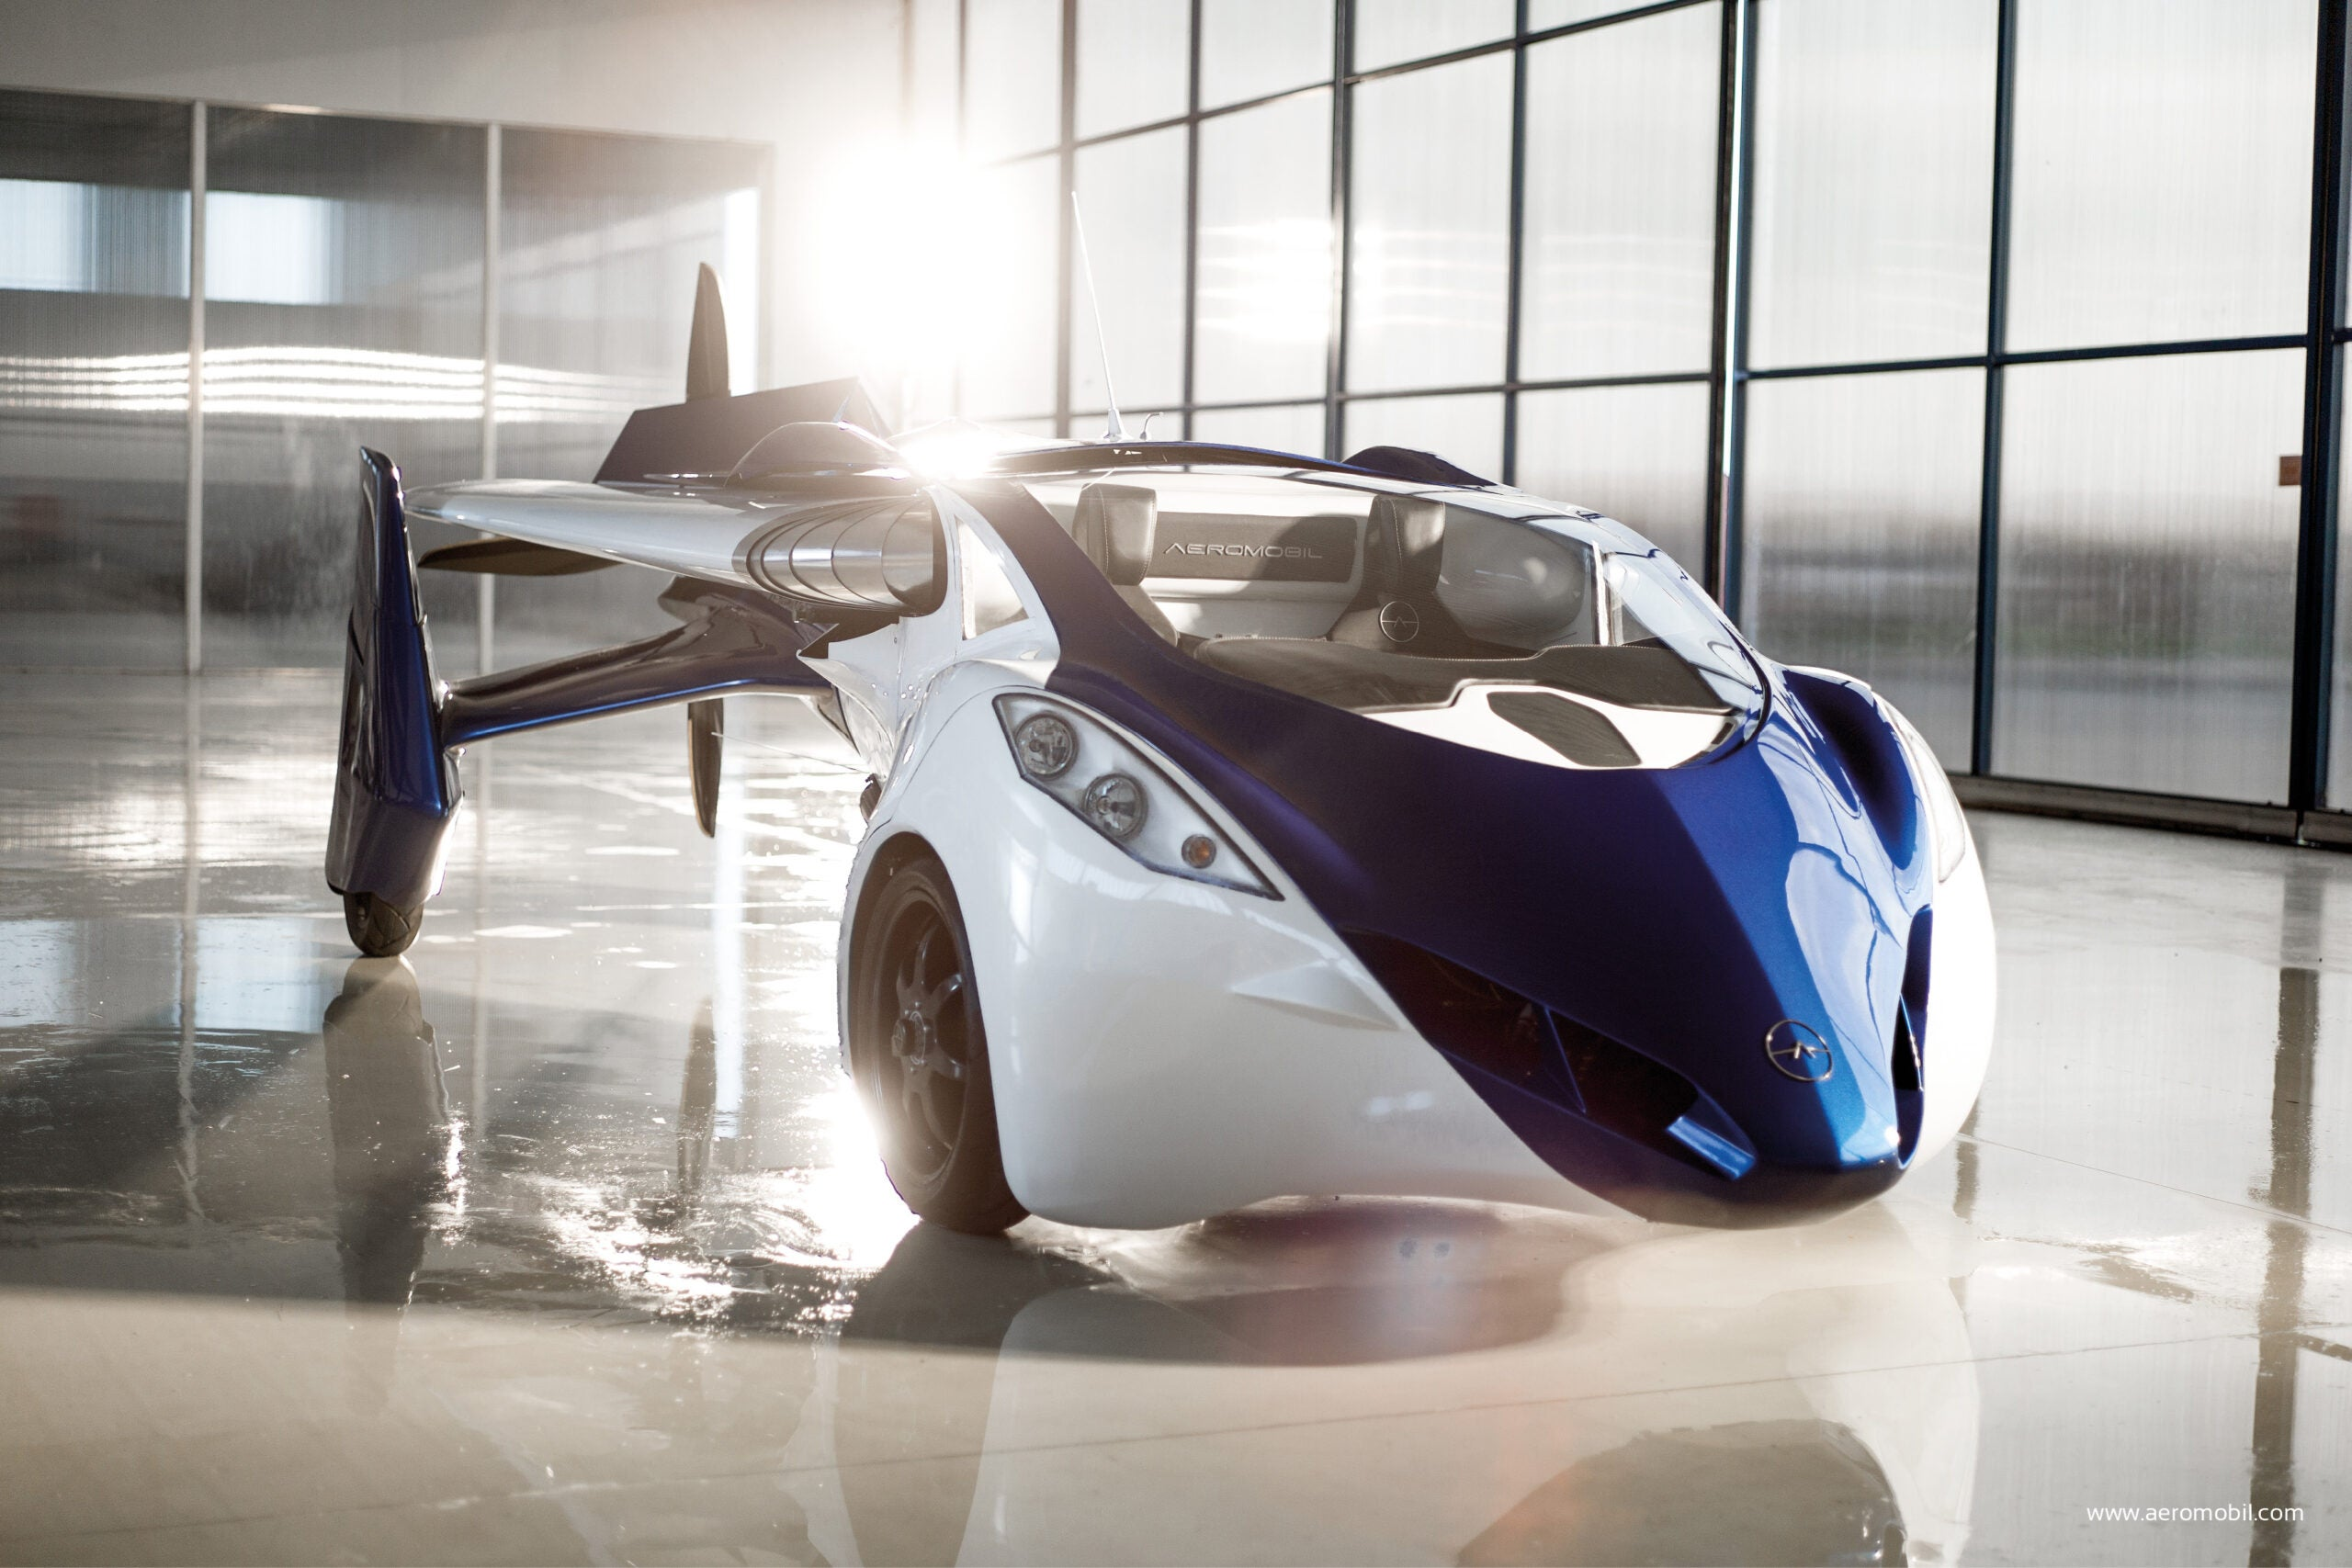 SXSW 2015: AeroMobil Says It Will Put Its Flying Car On The Market In 2017